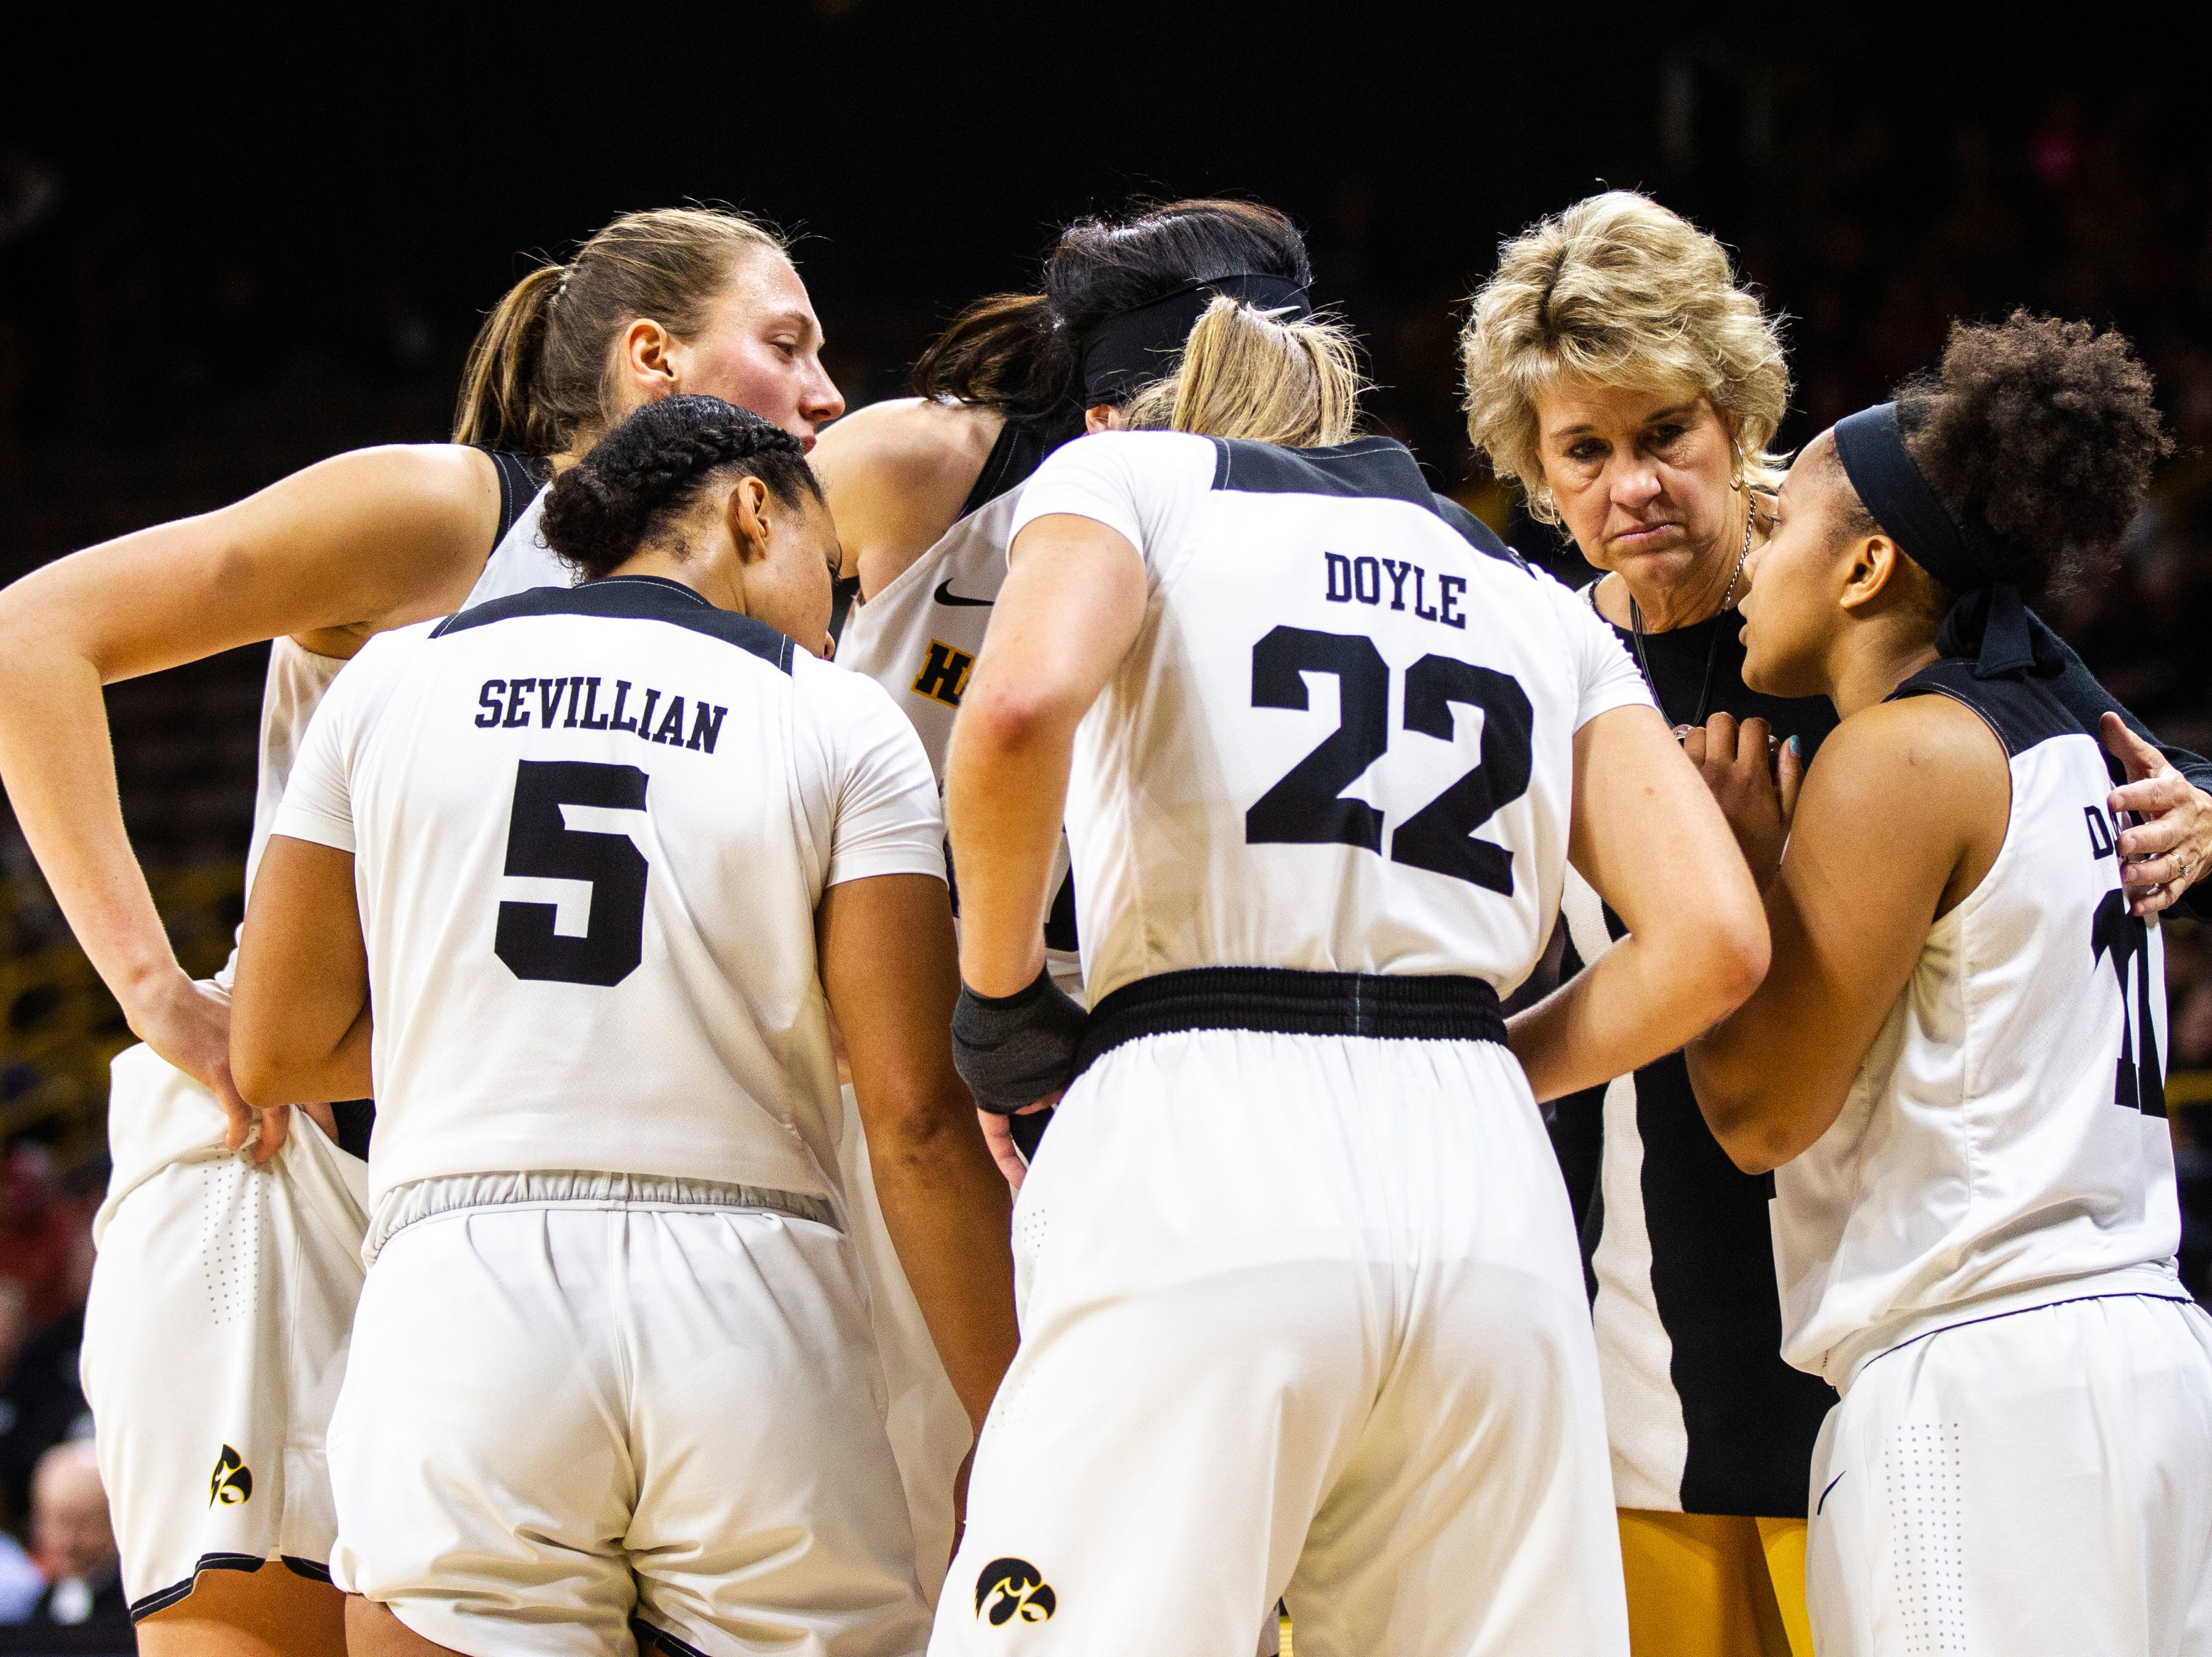 Iowa head coach Lisa Bluder huddles with Iowa guard Tania Davis (11) while she talks to teammates during a NCAA women's basketball game on Saturday, Dec. 8, 2018, at Carver-Hawkeye Arena in Iowa City.